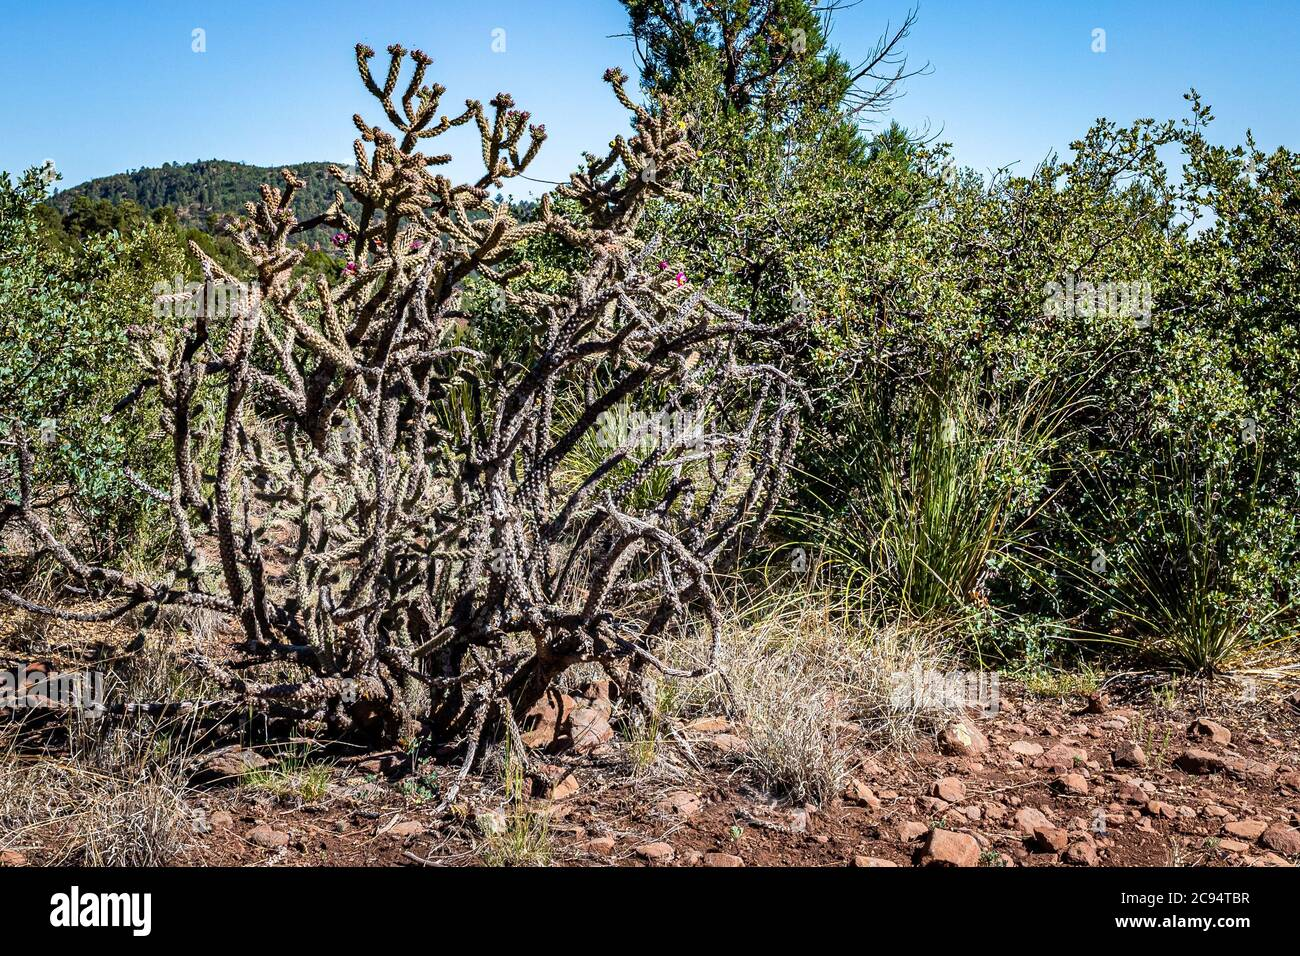 Cylindropuntia acanthocarpa, commonly referred to as staghorn, or buckhorn, cholla, is a cholla native to the Mojave, Sonoran, and Colorado Deserts of Stock Photo